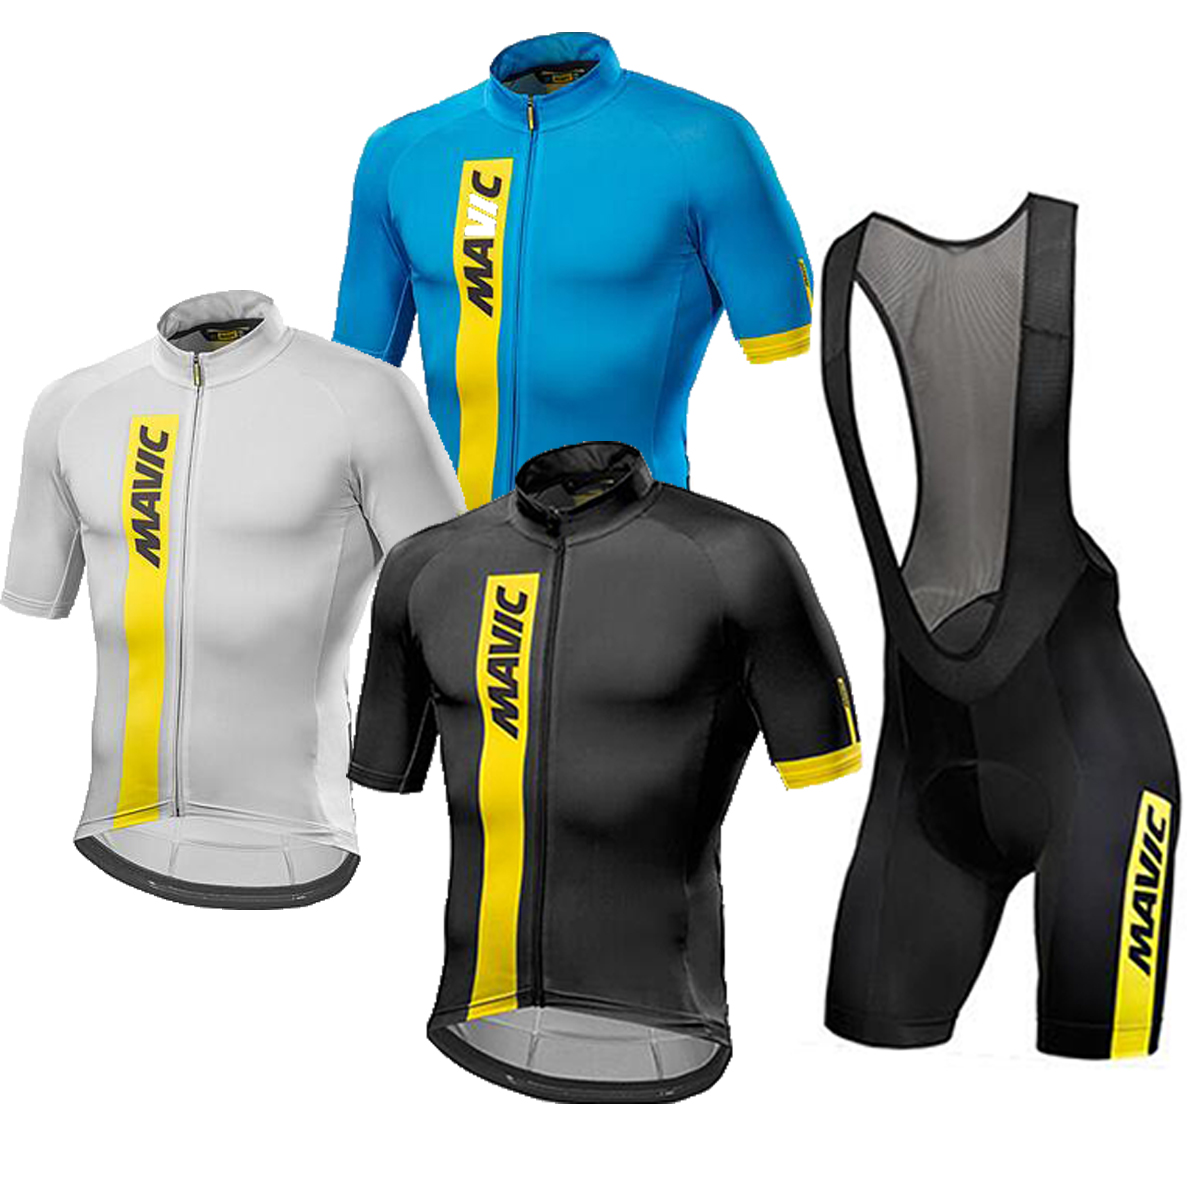 2017 Team Mavic Summer Short Sleeve Cycling Jersey Clothing Bike Clothes Set Ropa Ciclismo 2017 new pro team cycling jersey set bike clothing ropa ciclismo breathable short sleeve 100%polyester cycling clothing for mtb